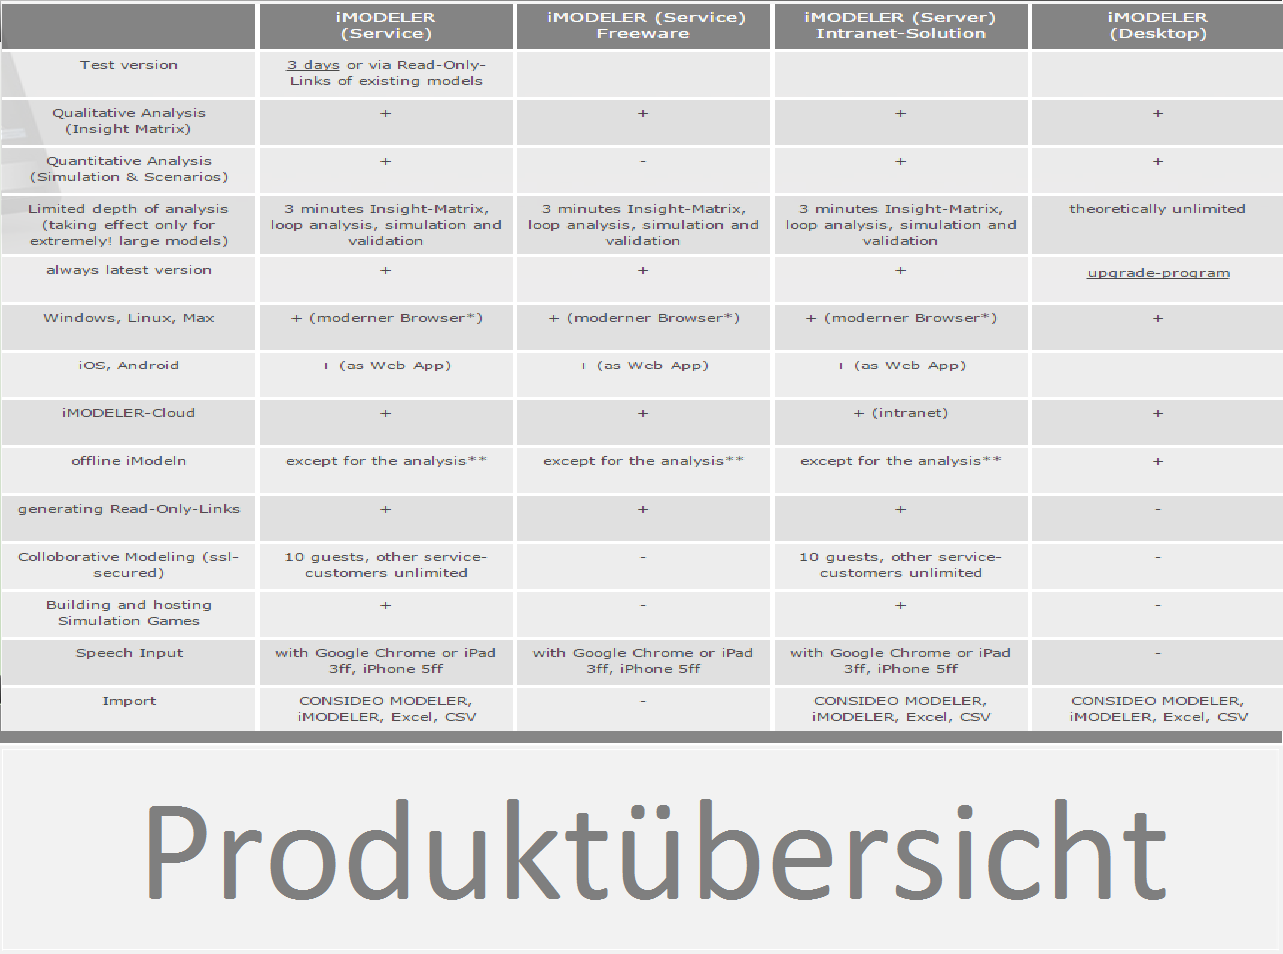 files/consideo/images/Produktuebersicht_Neu5.png